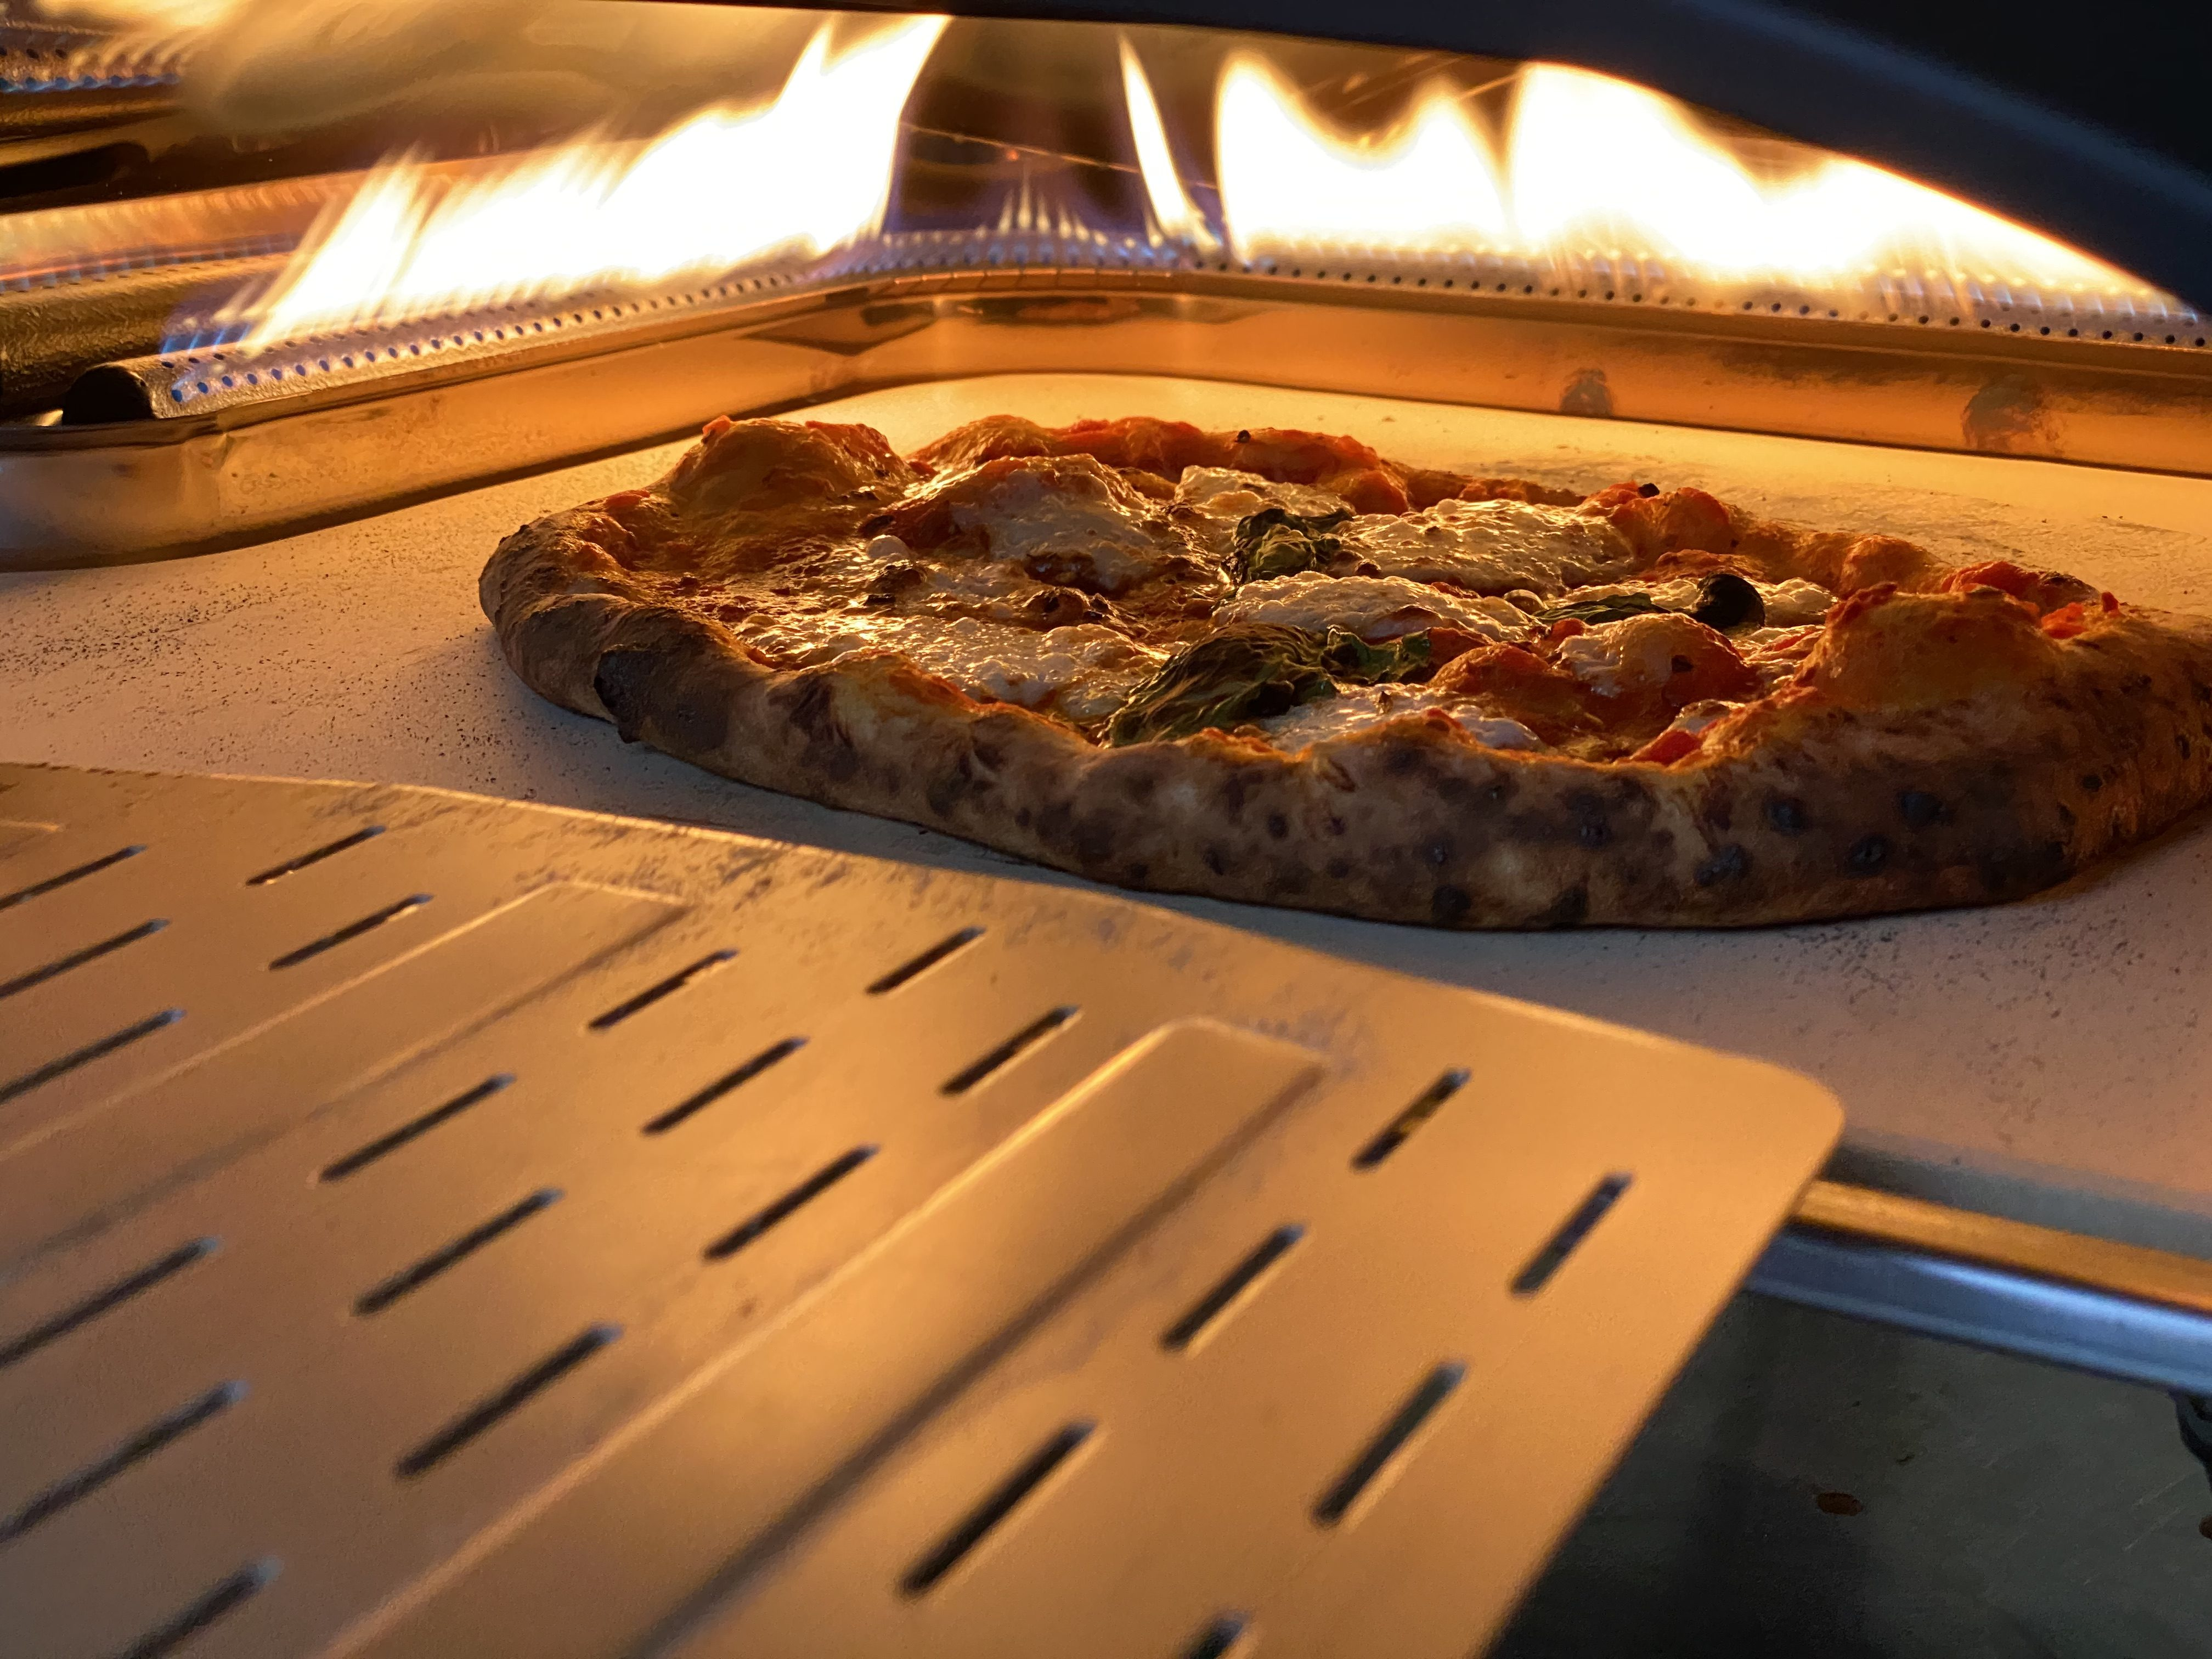 Ooni S Koda 16 Pizza Oven Is The Rare Kitchen Gadget That Delivers On Its Promise Techcrunch